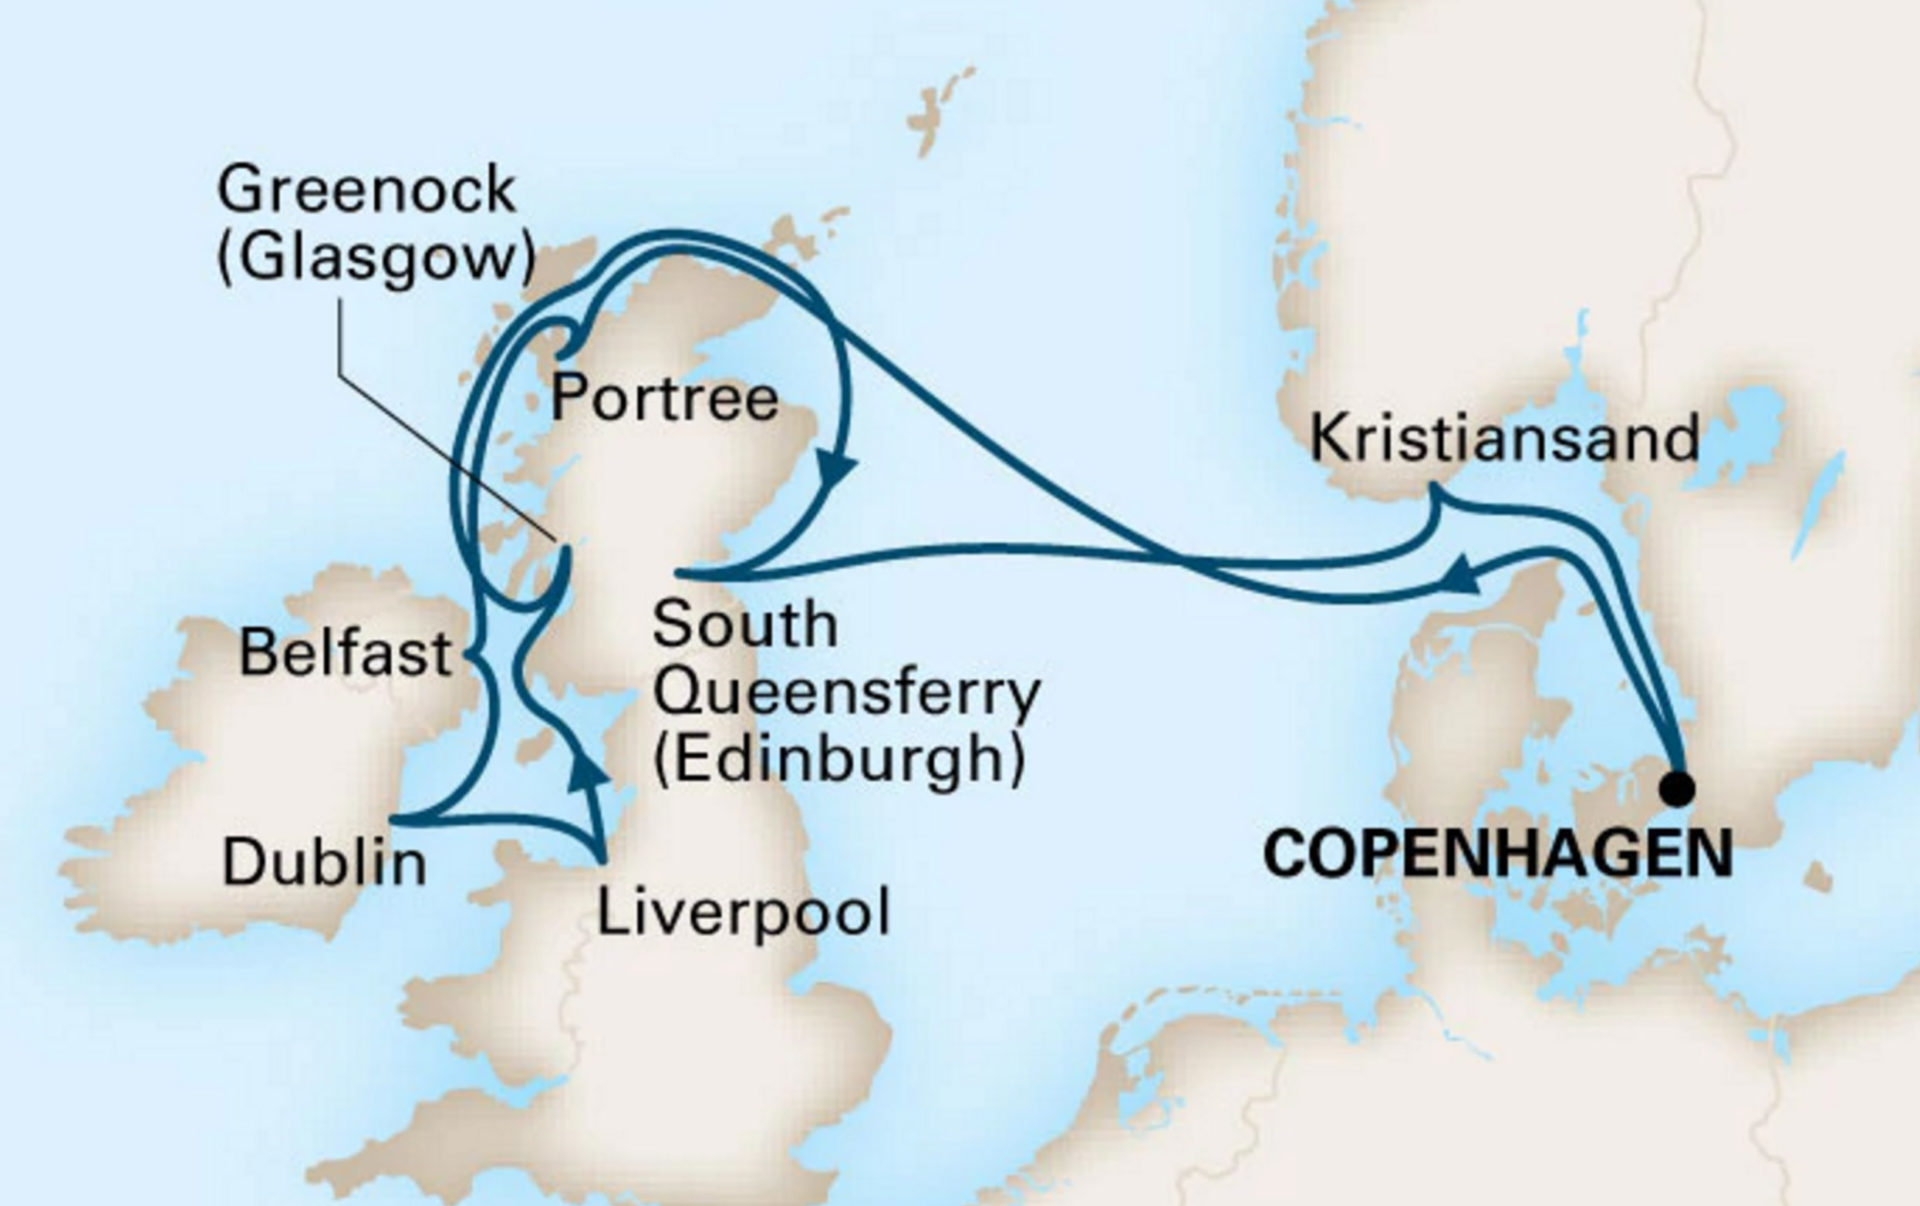 Join Pete And Judy On Their Celtic Adventure Aboard The Ms Zuiderdam